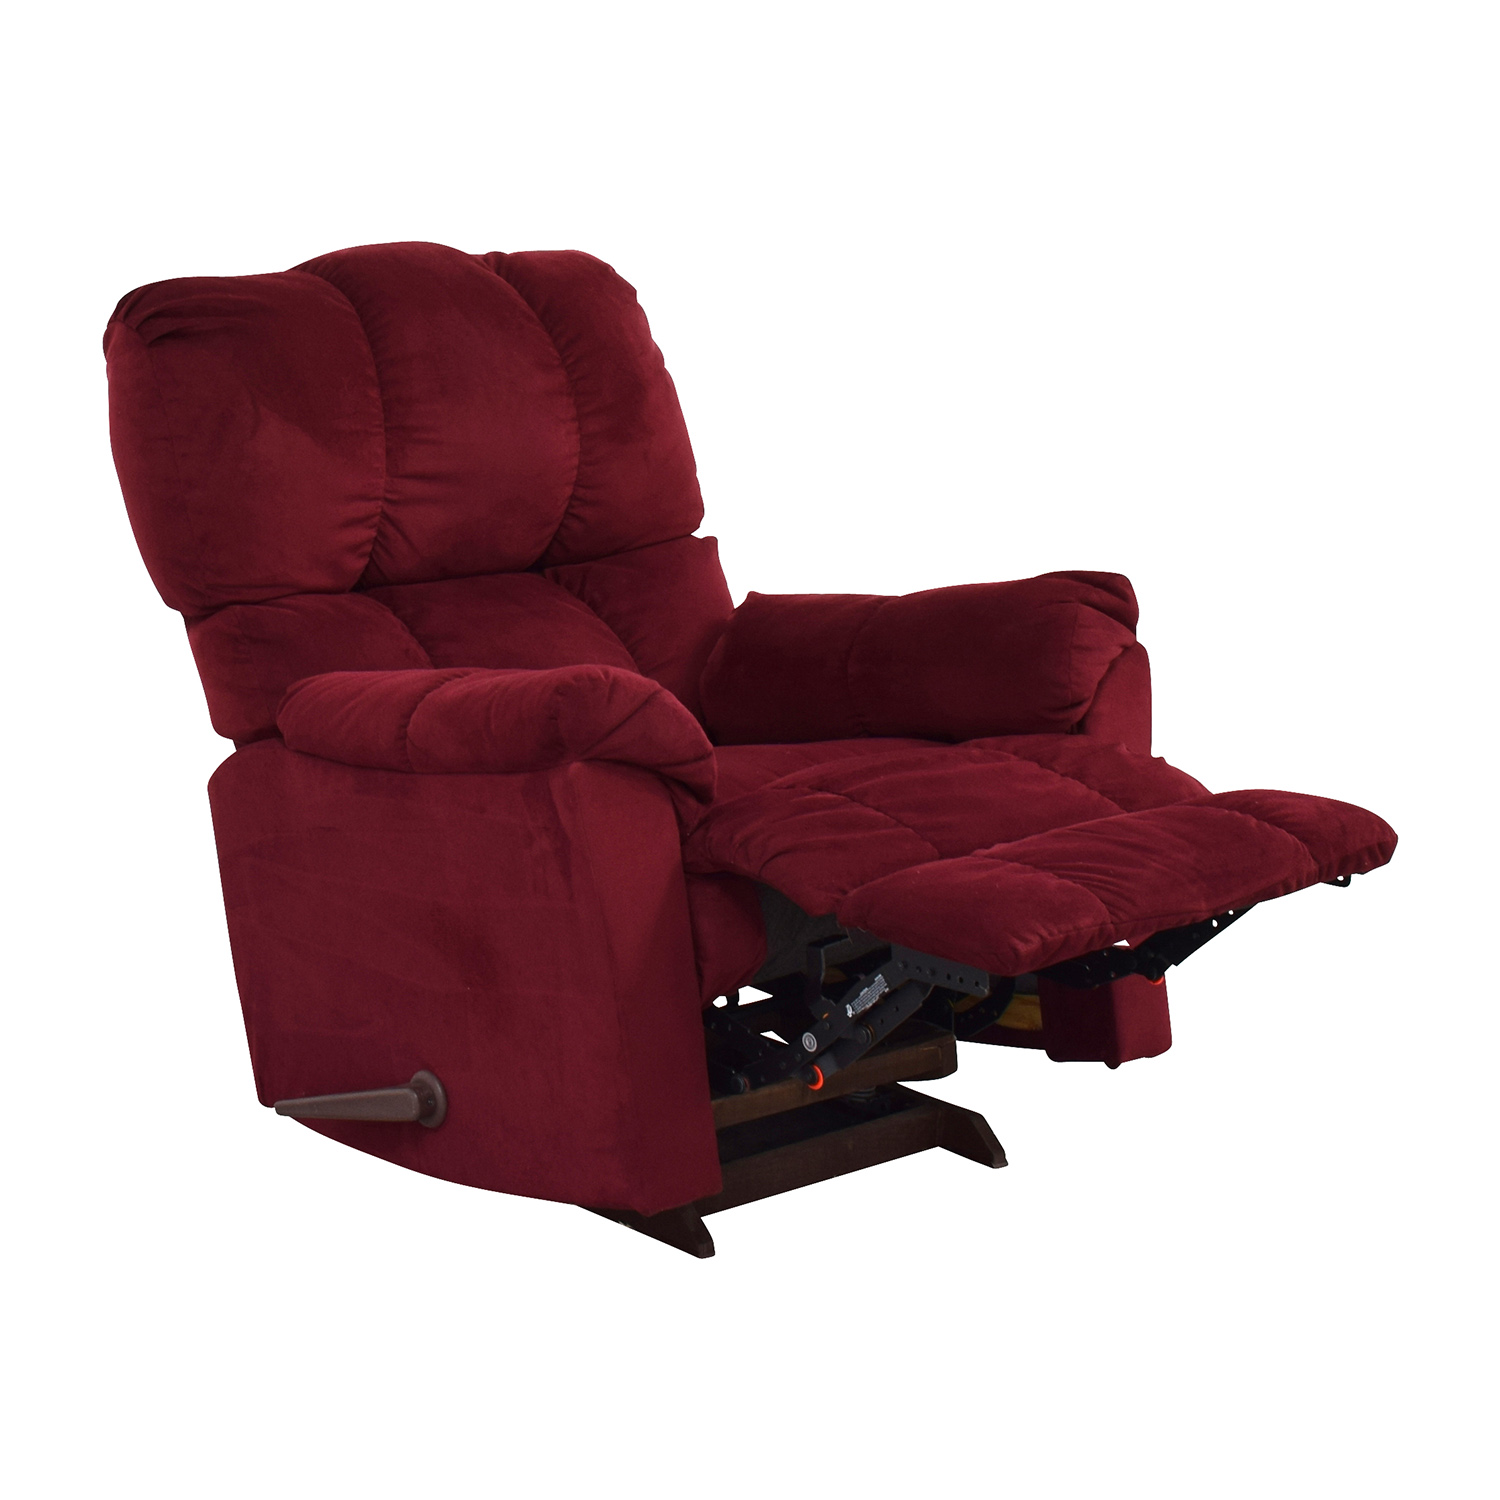 Macys Red Recliner Arm Chair / Accent Chairs